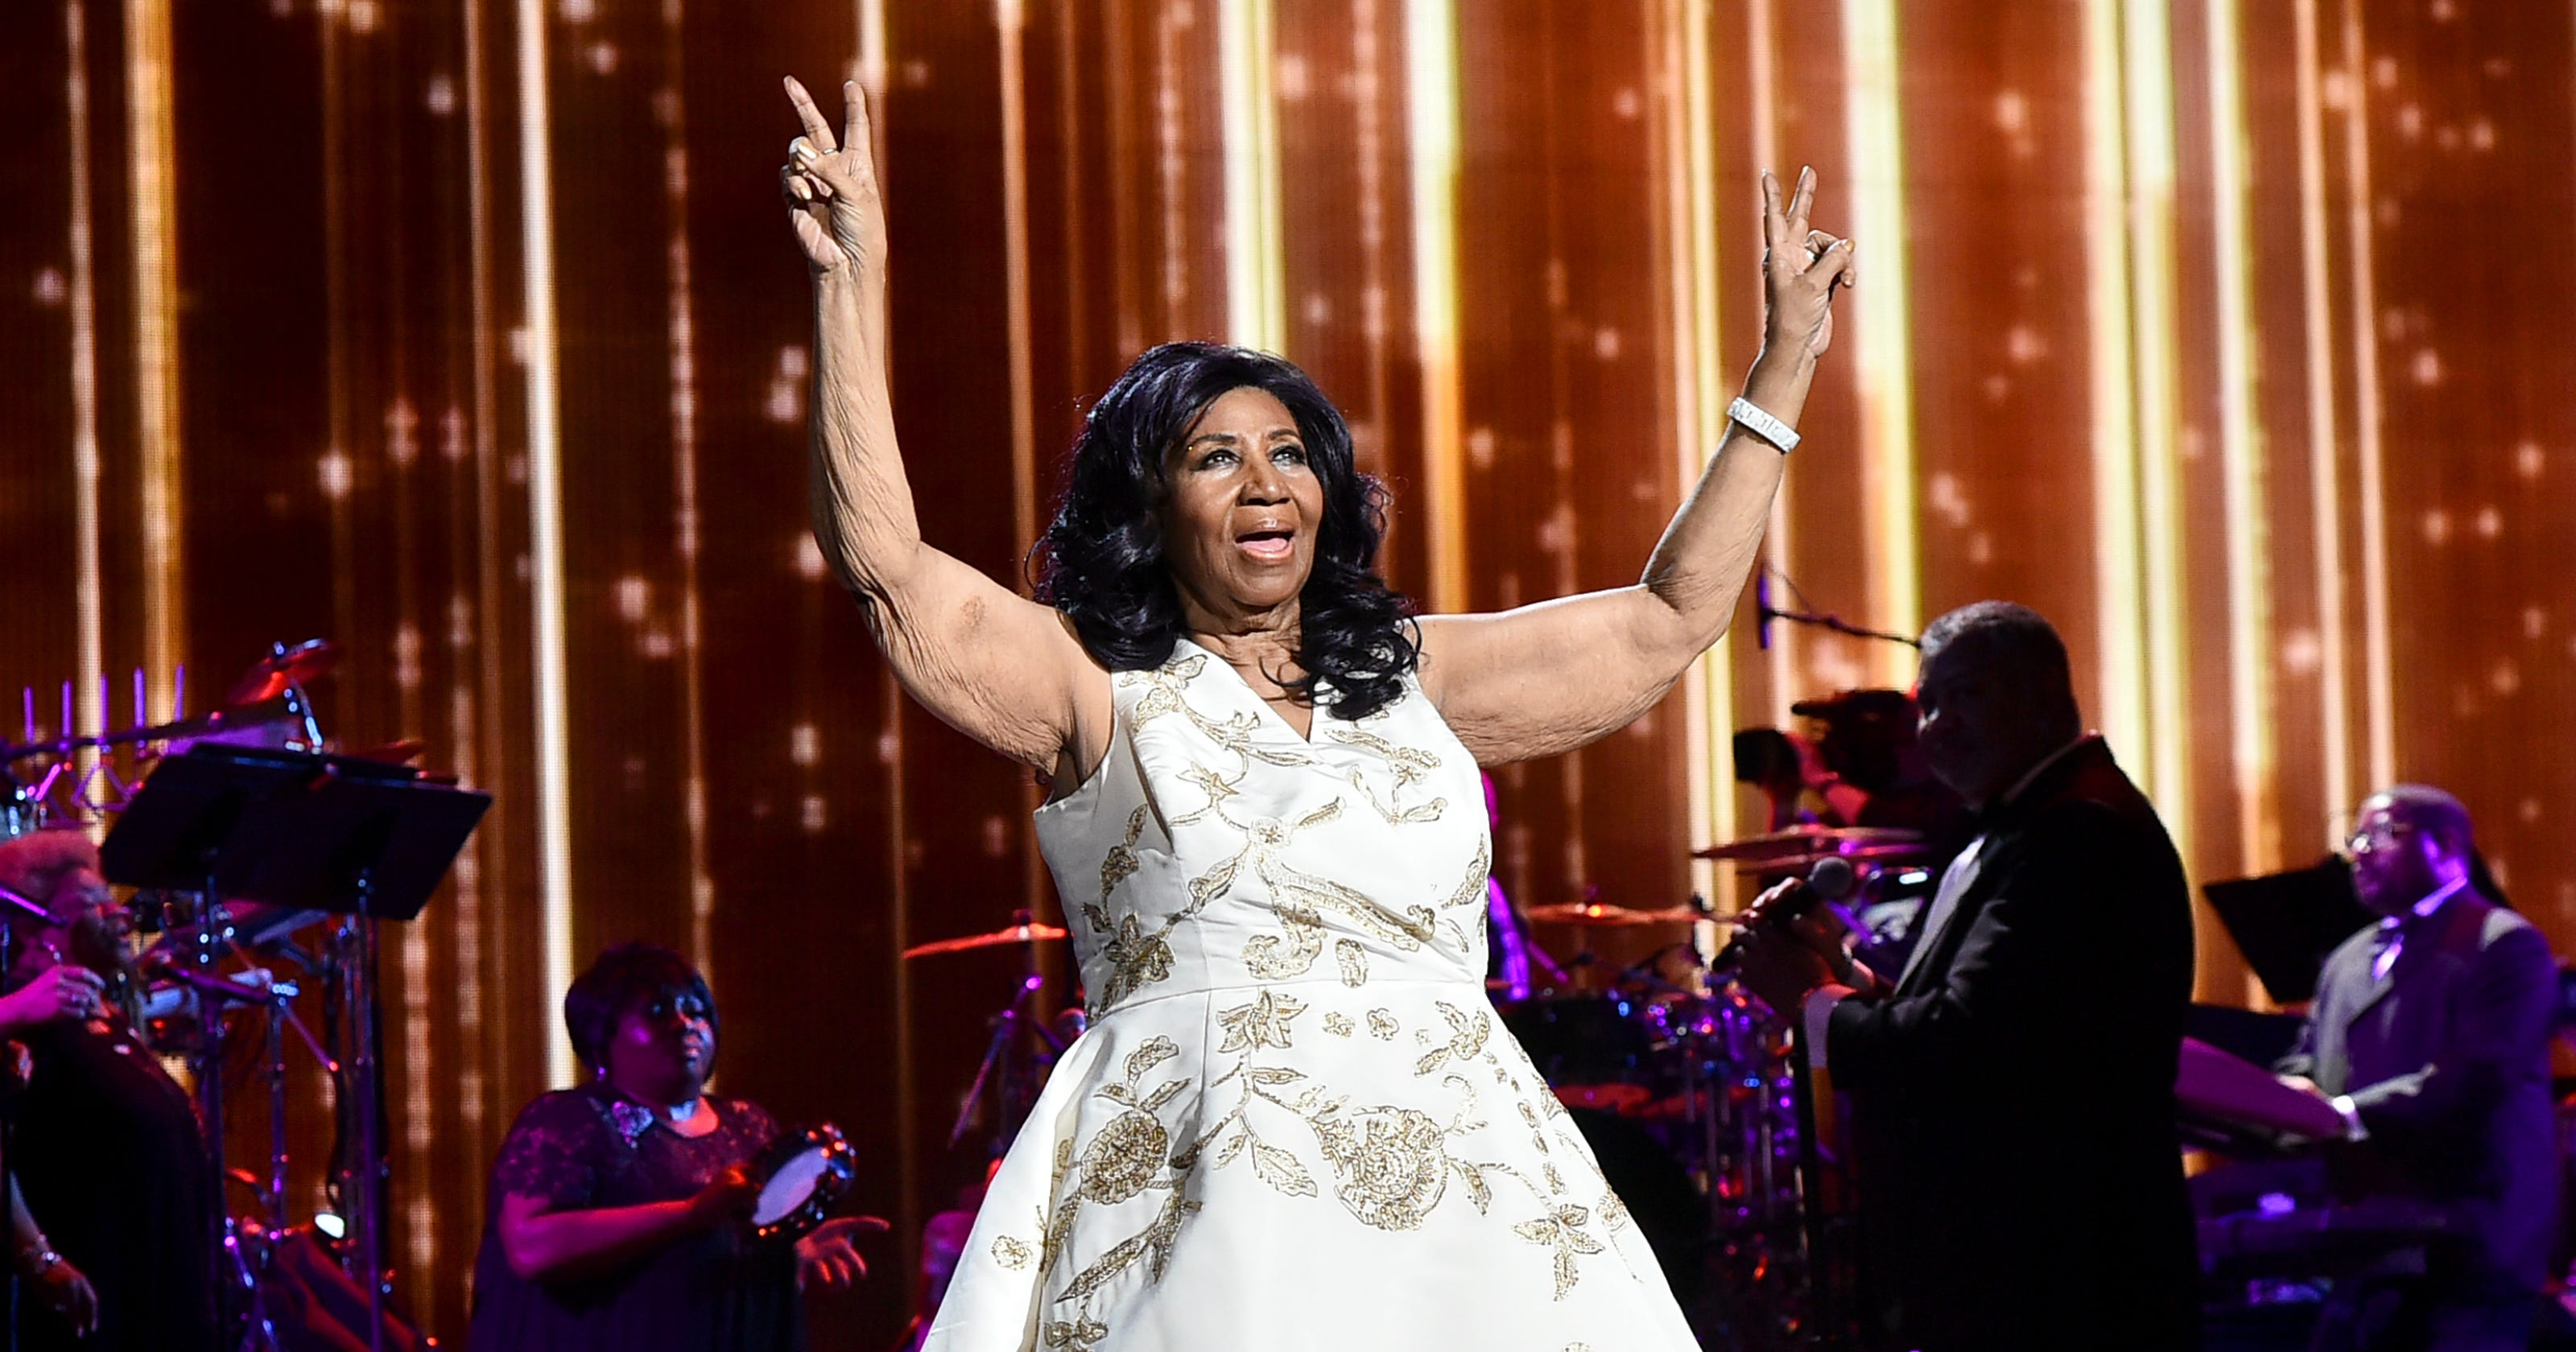 Pancreatic cancer killed Aretha Franklin and scores of other celebs. Why  a9549f798